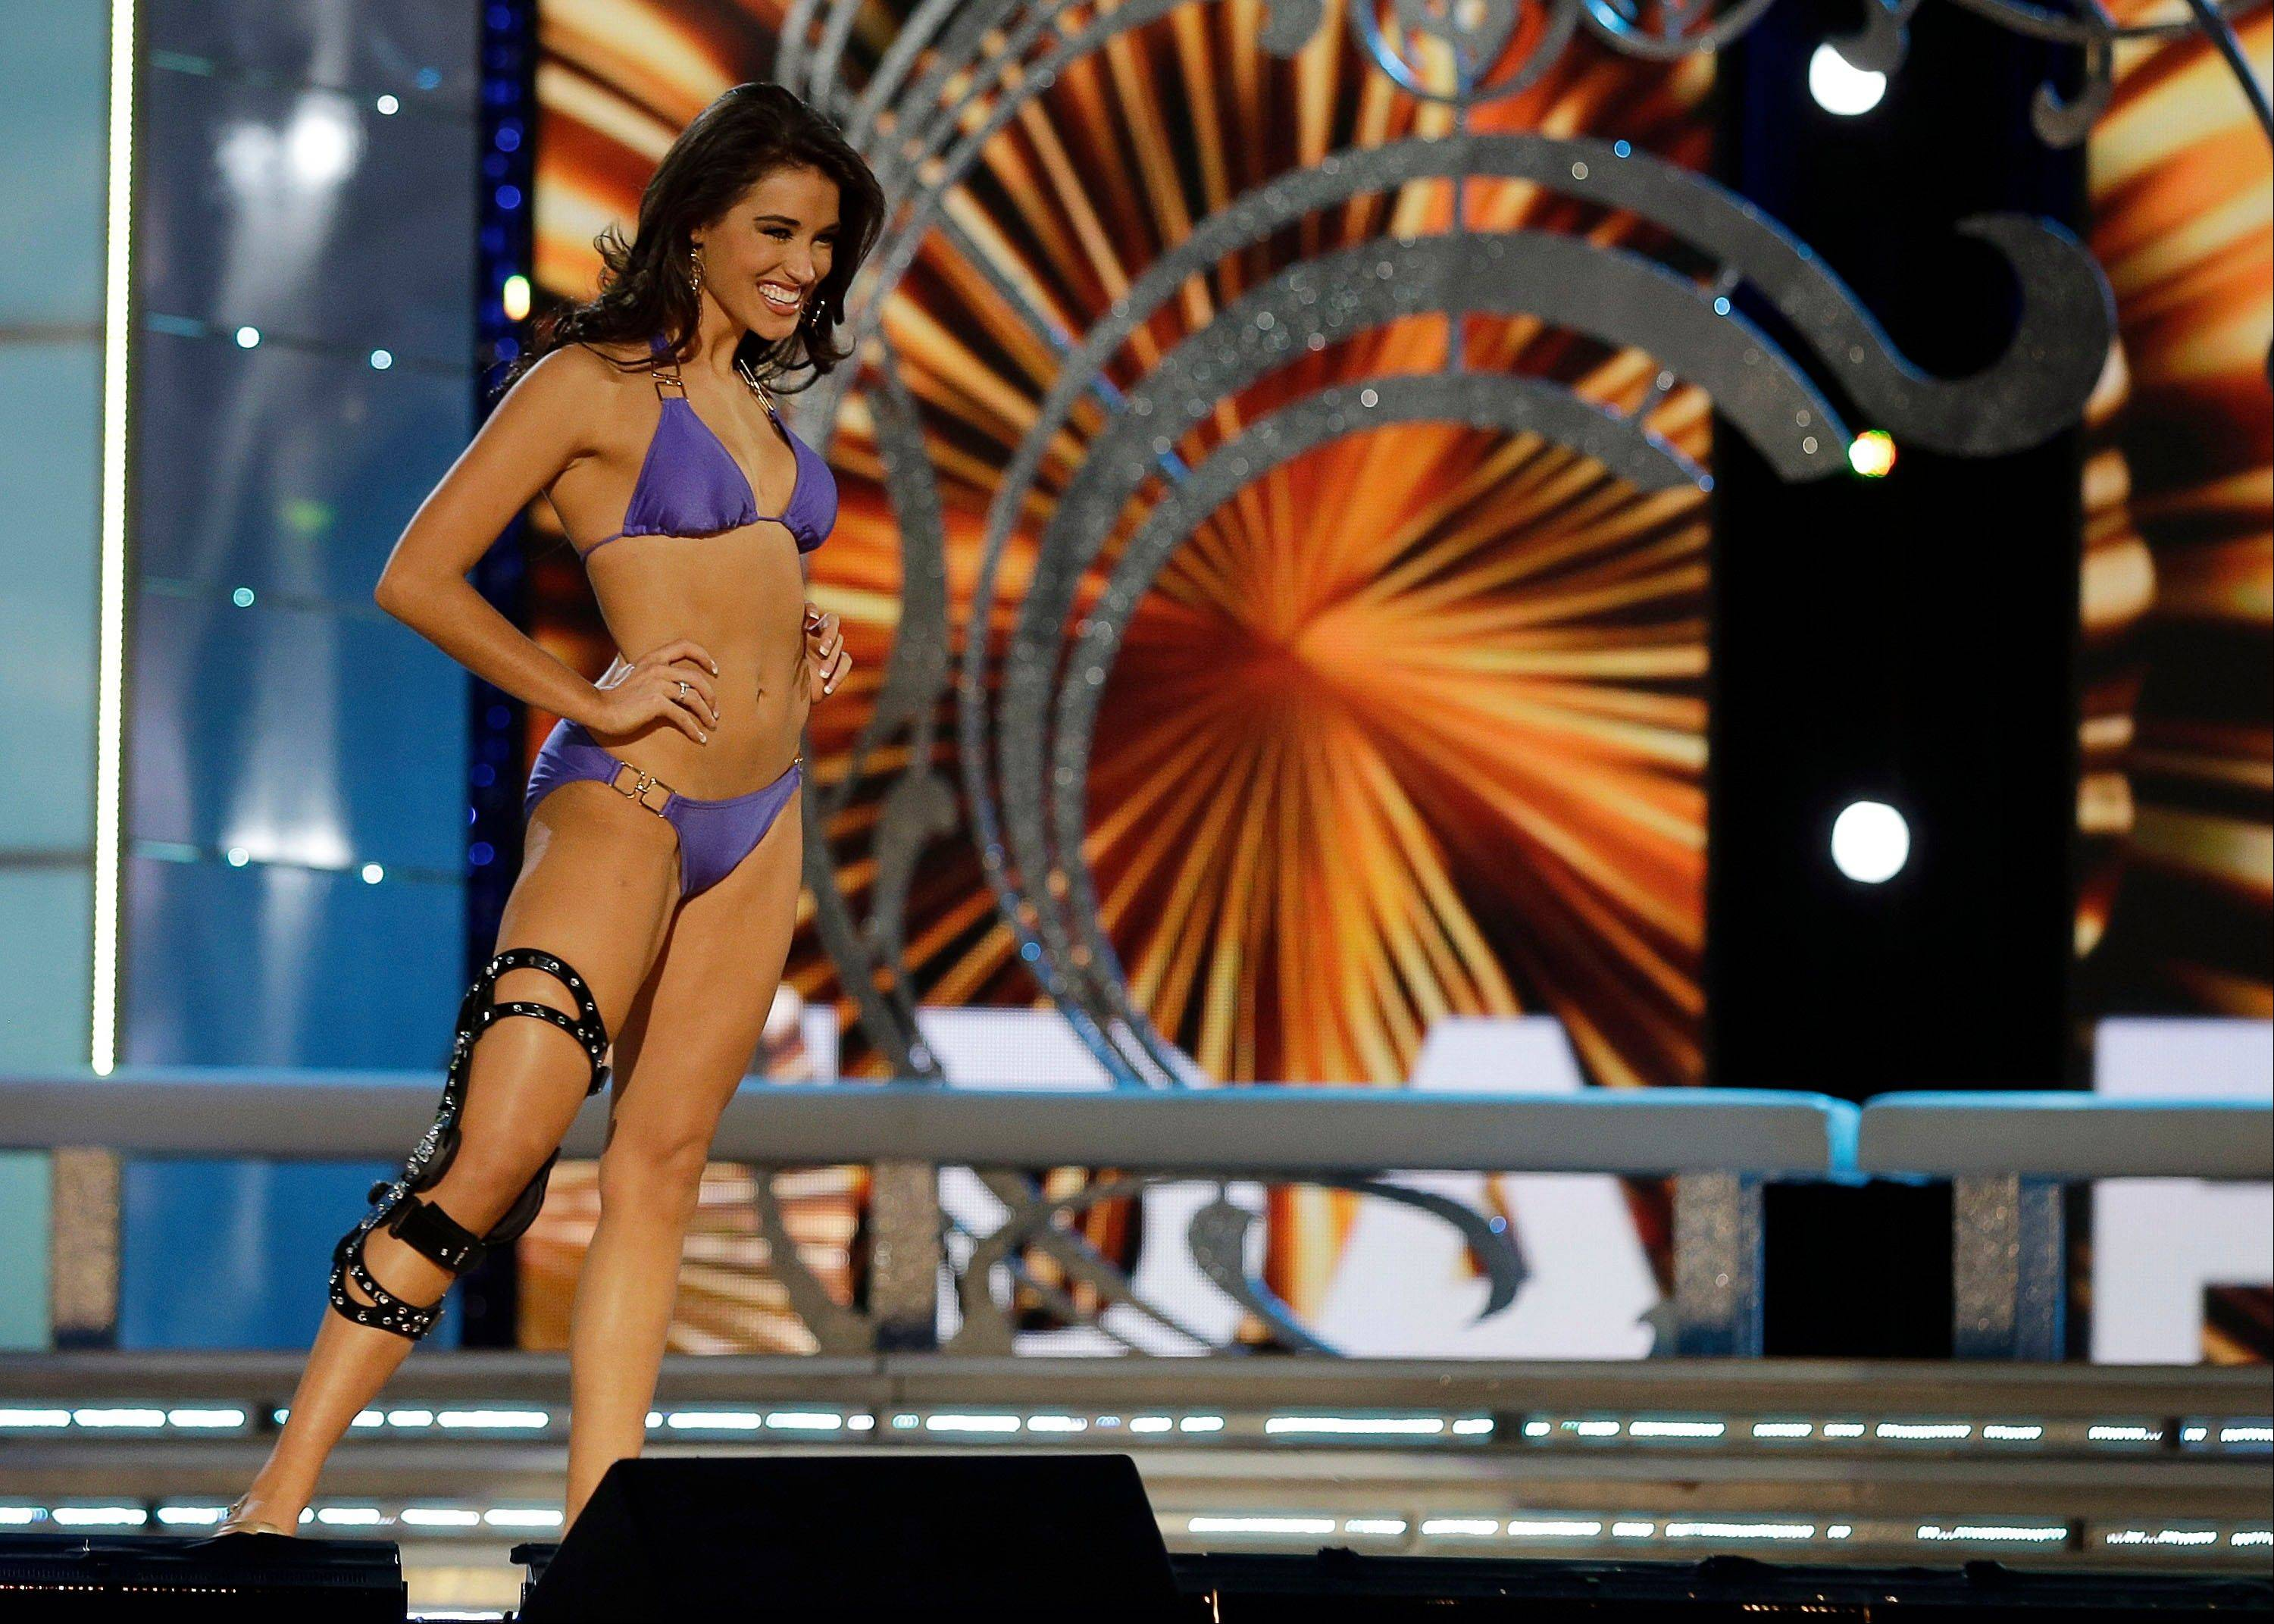 Miss Florida Myrrhanda Jones wears a swimsuit during the lifestyle competition during the Miss America 2014 pageant, Sunday, Sept. 15, 2013, in Atlantic City, N.J.